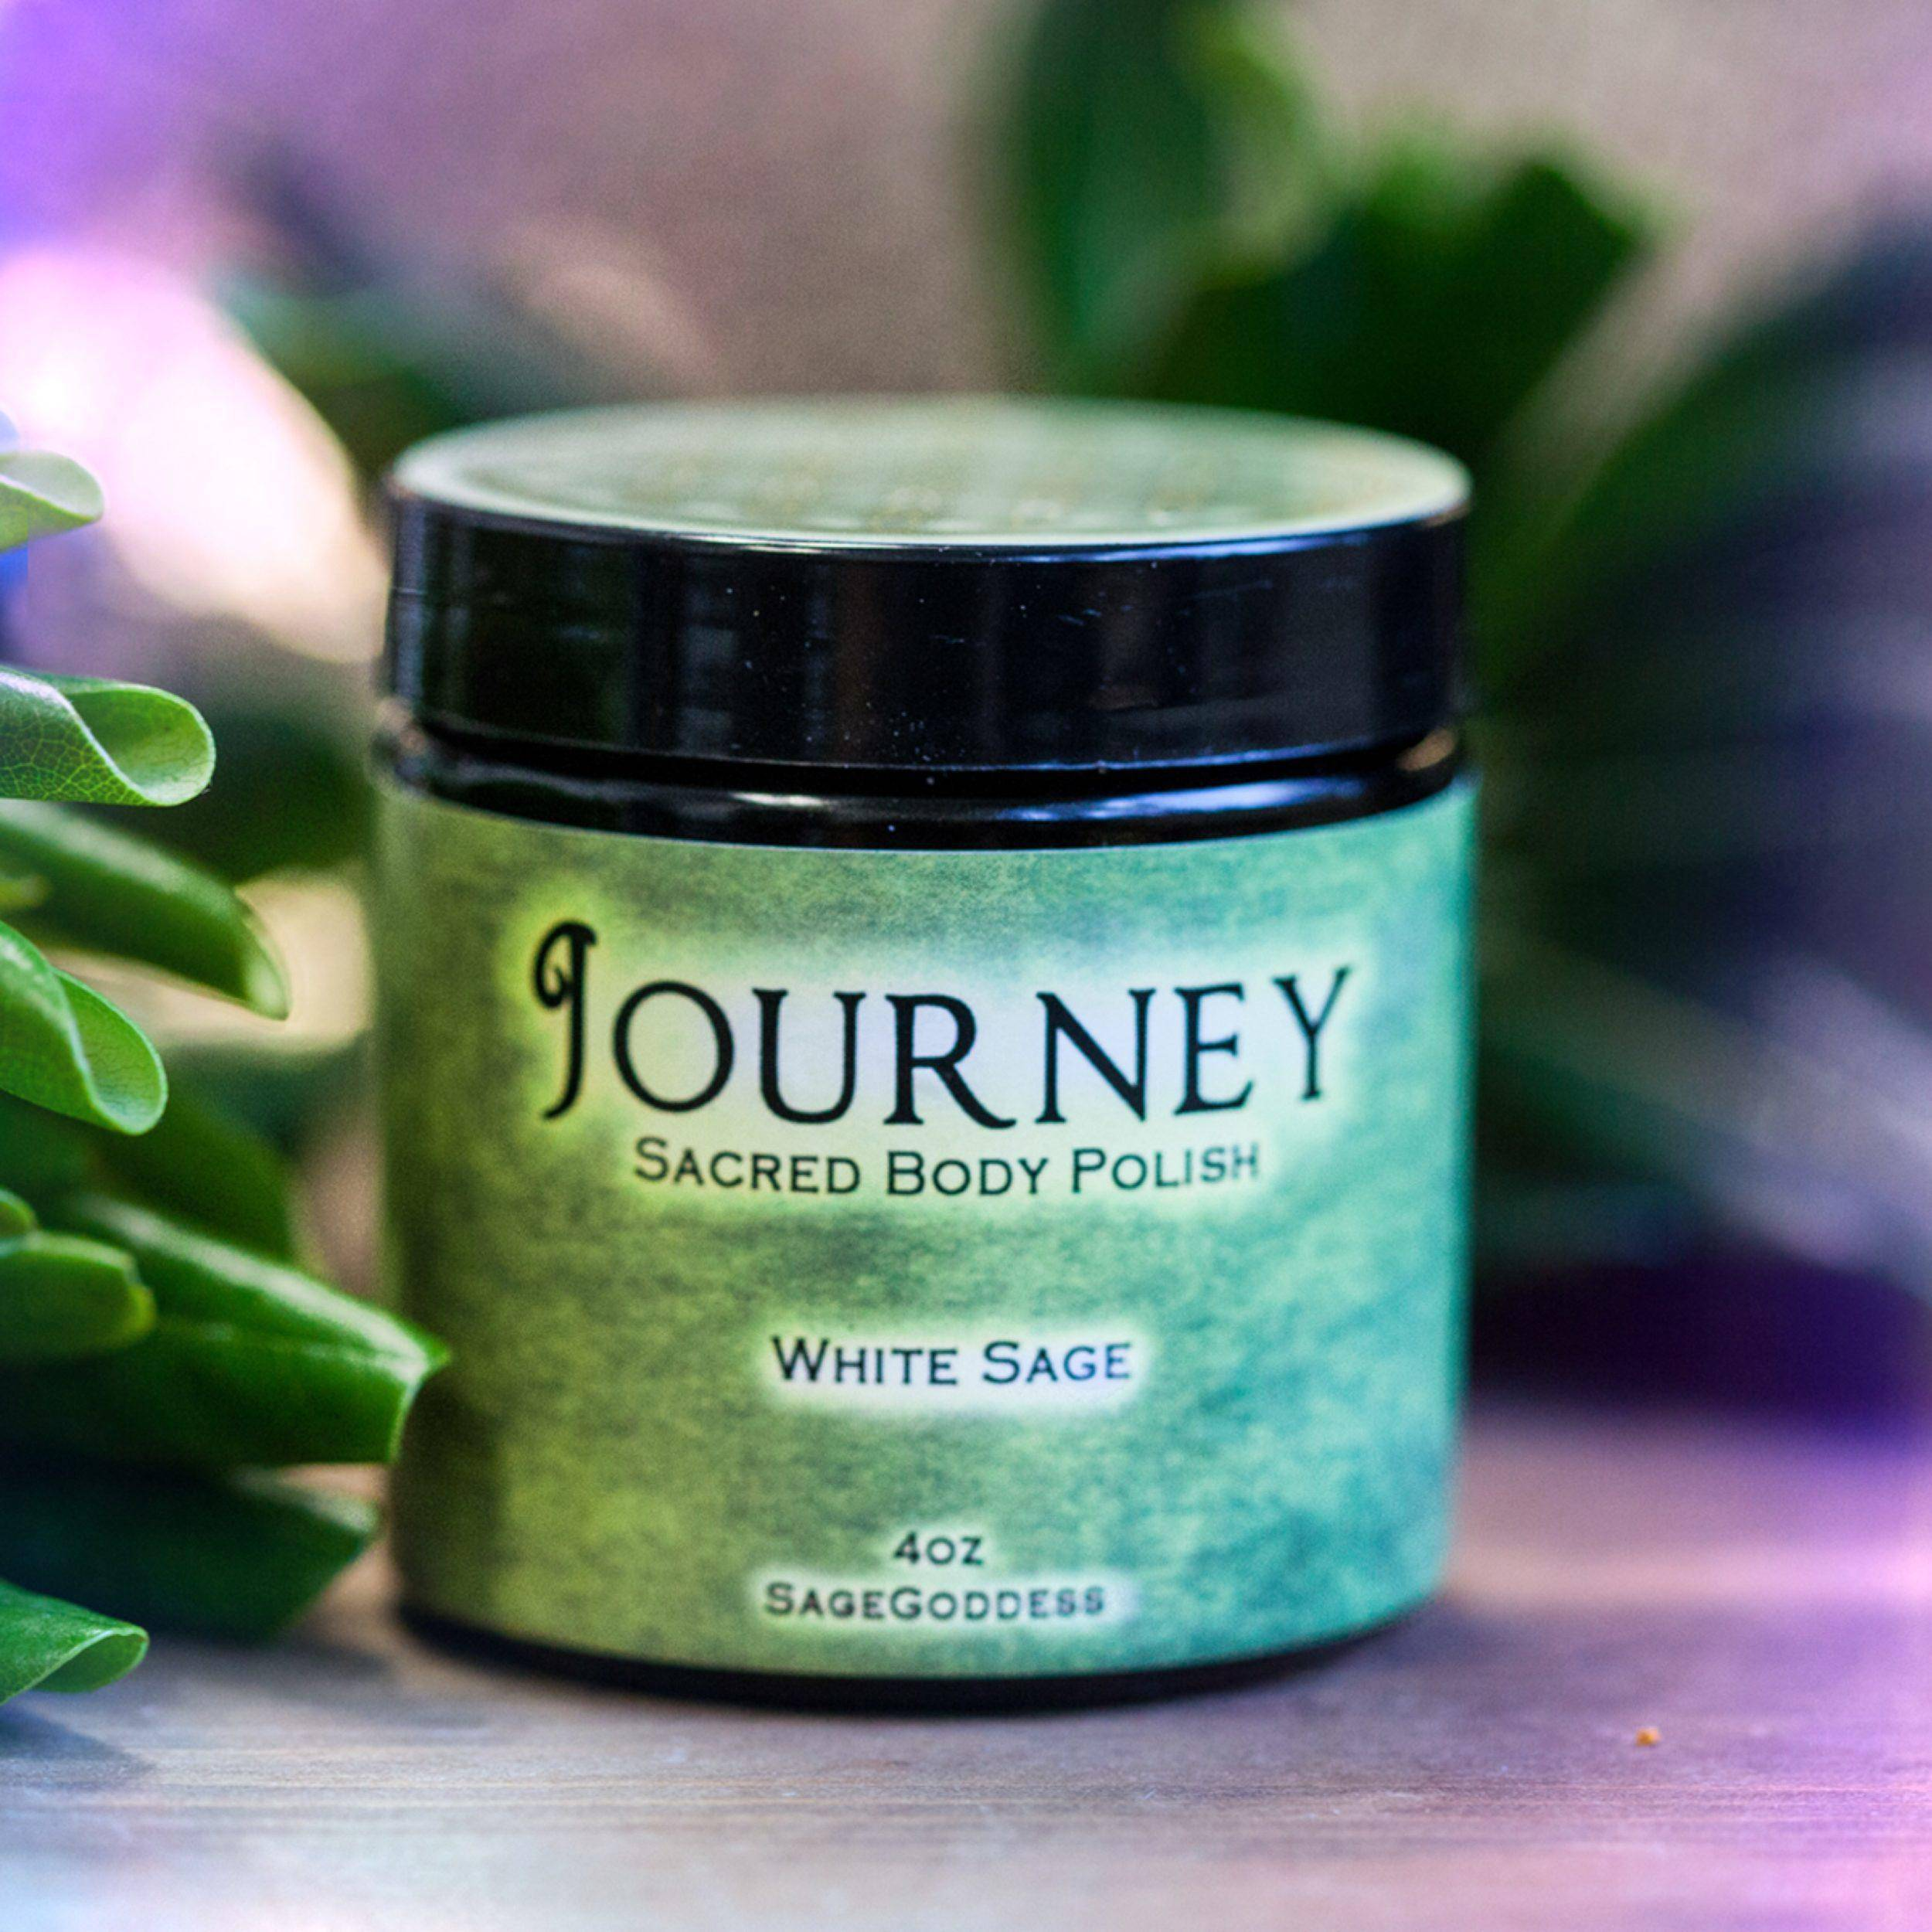 Journey_Body_Polish_1of2_8_20